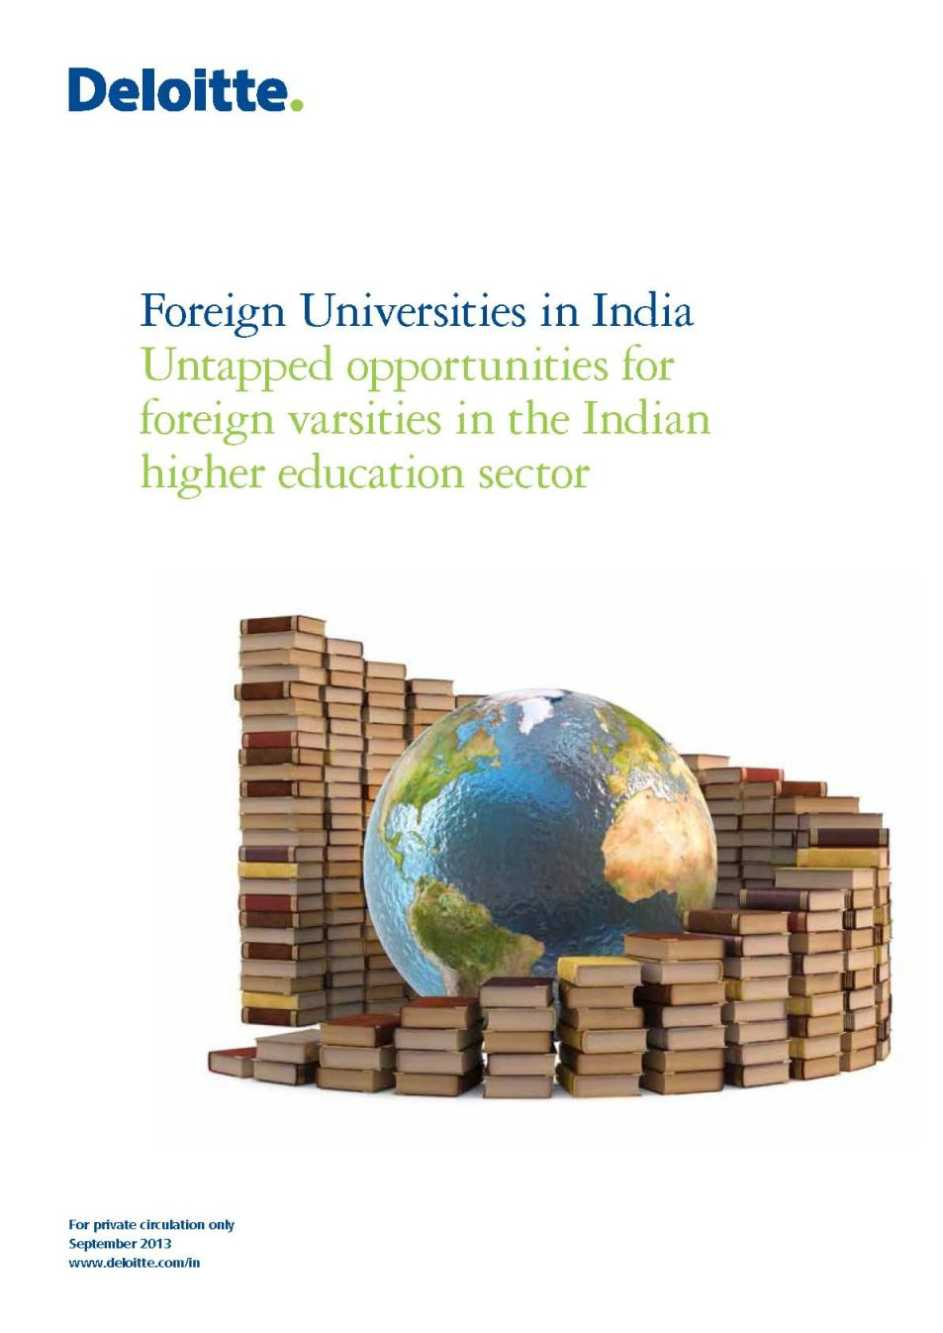 benefits of foreign universities in india Education abroad is typically higher than education in india, no doubt  you can  benefit from these funds also  the education culture in foreign universities is  based on the ideology of unhindered learning and creating a.